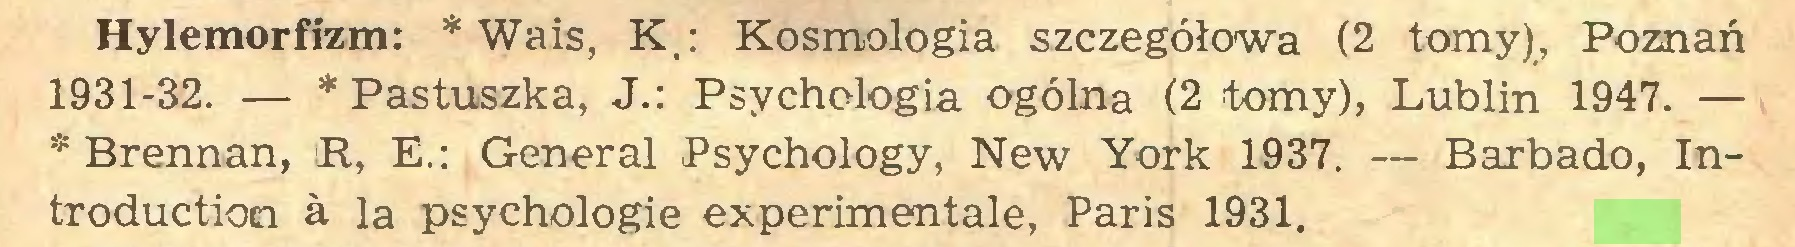 (...) Hylemorfizm: * Wais, K : Kosmologia szczegółowa (2 tomy), Poznań 1931-32. — * Pastuszka, J.: Psychologia ogólna (2 tomy), Lublin 1947. — * Brennan, R, E.: General Psychology, New York 1937. — Barbado, Introduction à la psychologie experimentale, Paris 1931...